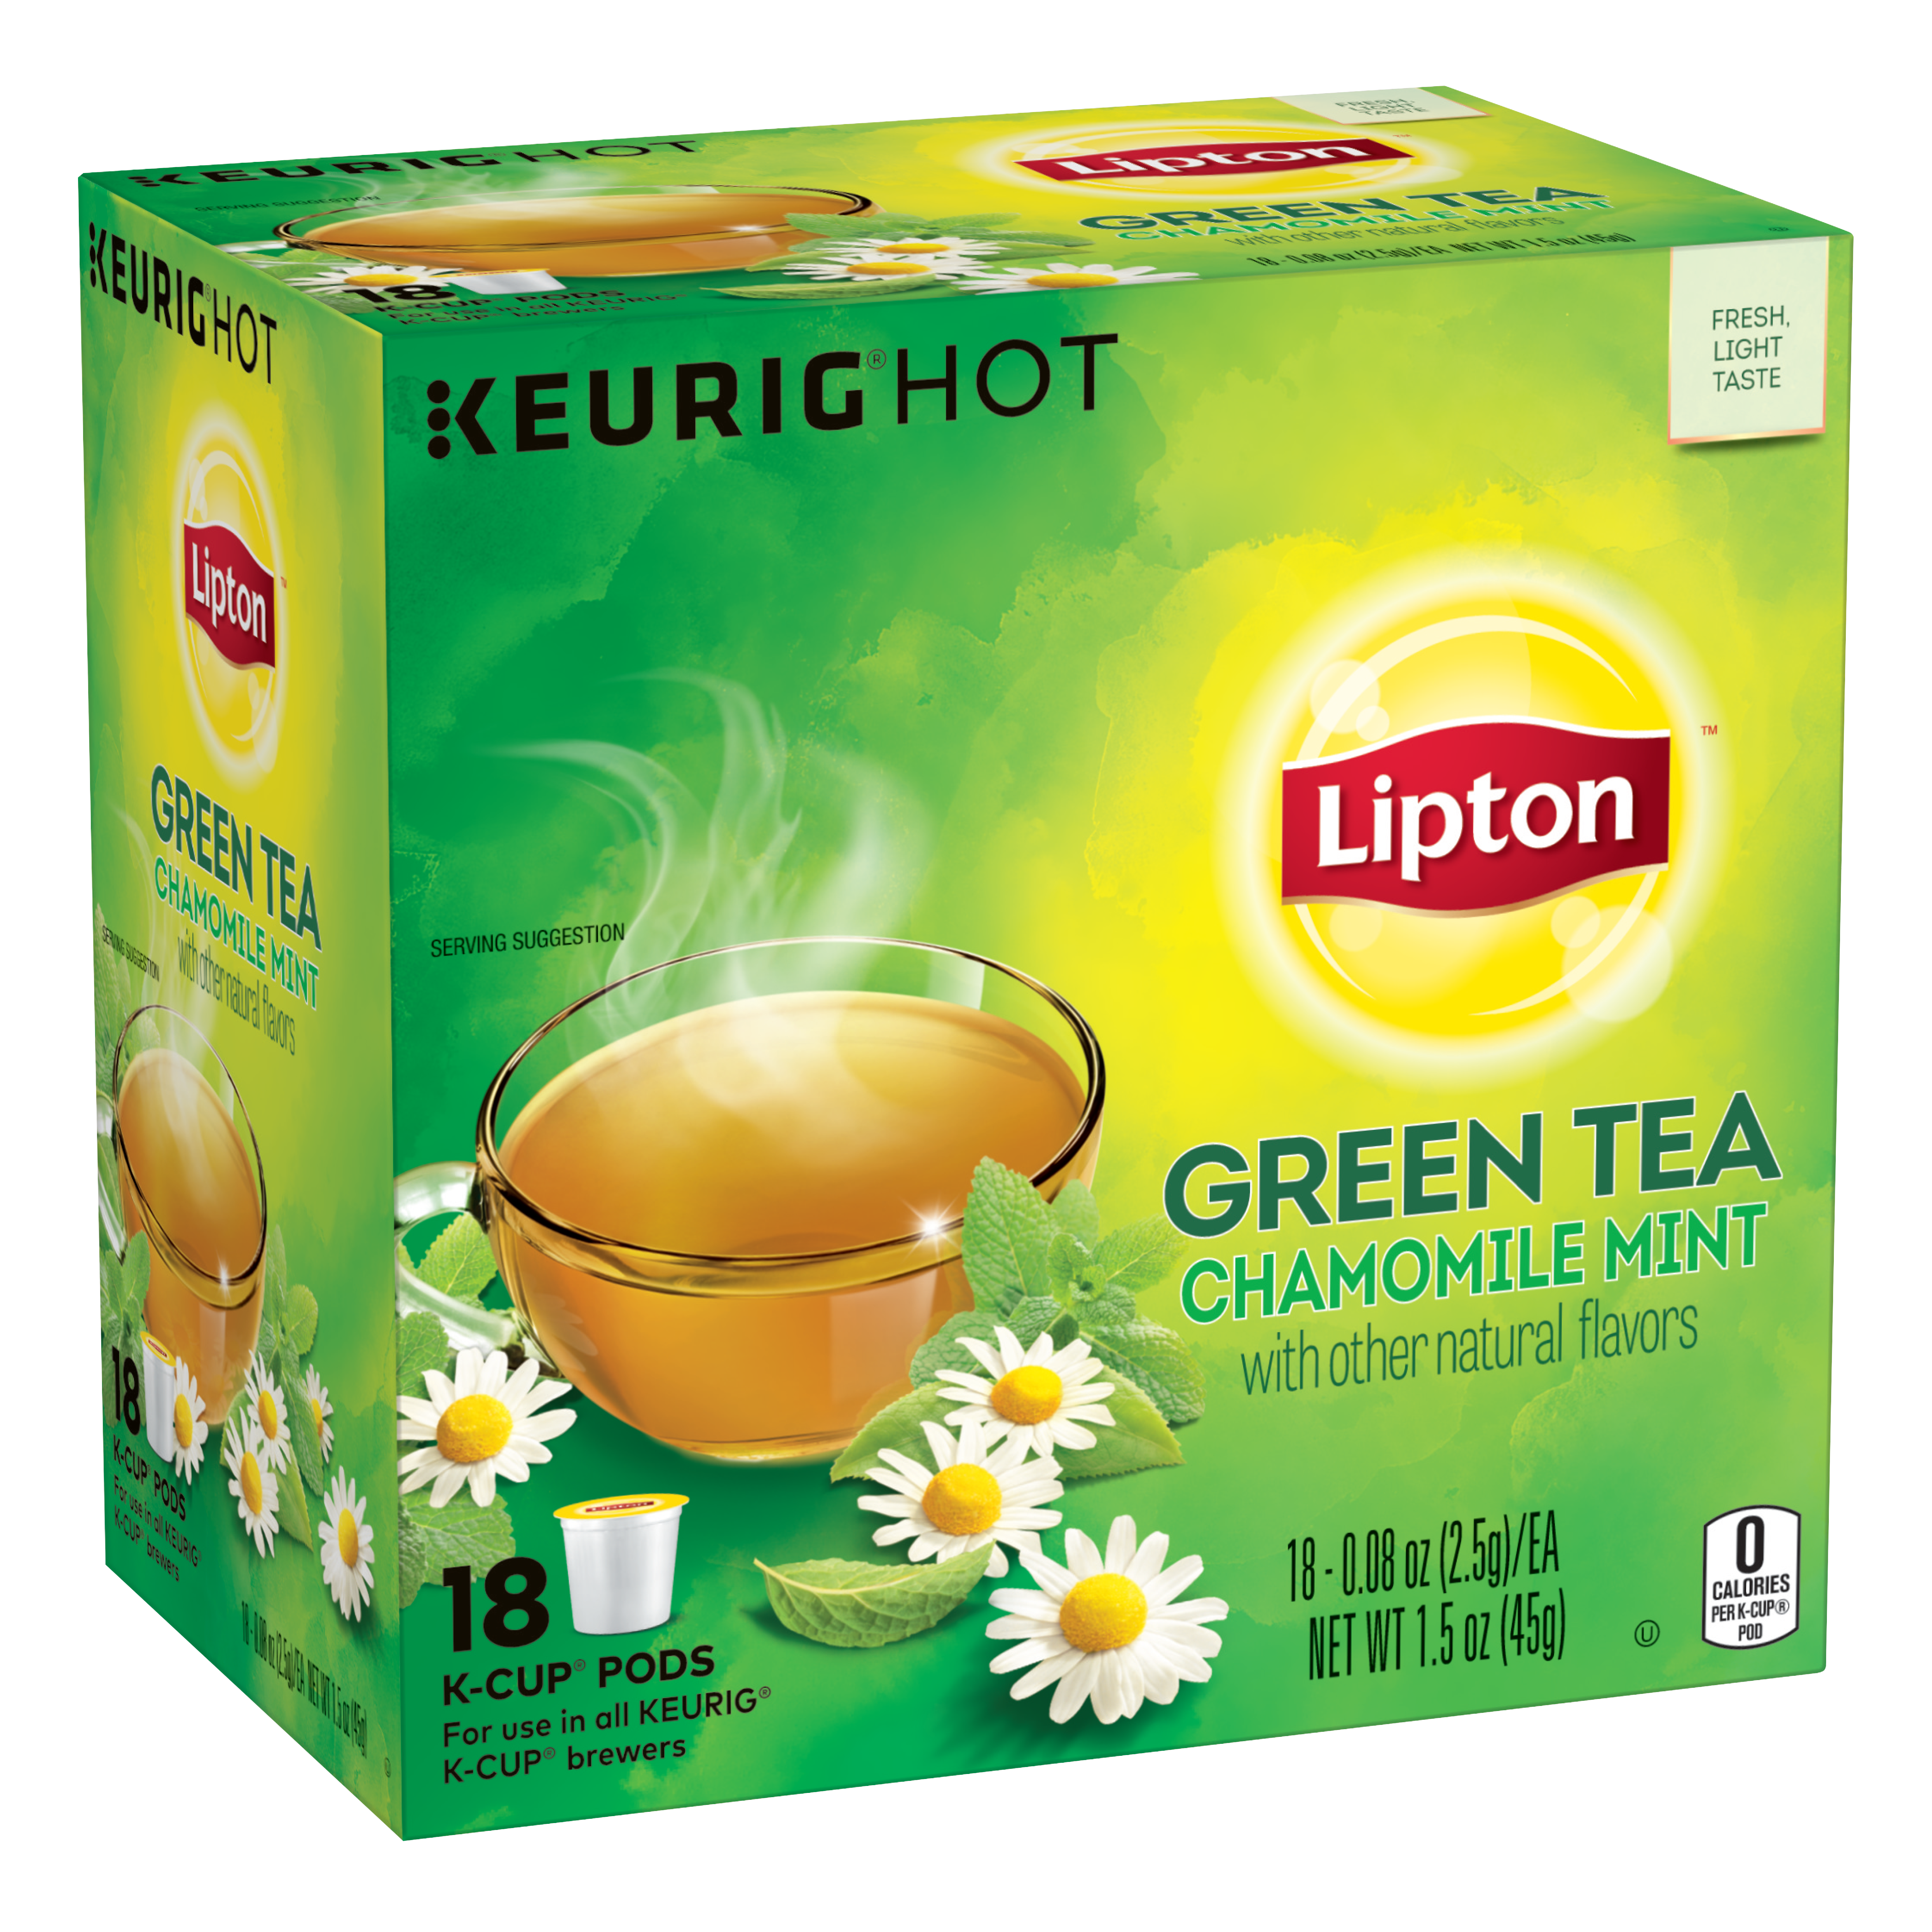 green tea of lipton tea A cup of hot tea in the afternoon a refreshing iced tea on a sunny day at home or on the go, alone or together, we've been making little lipton® moments since 1880 welcome to the wonderful world of tea.